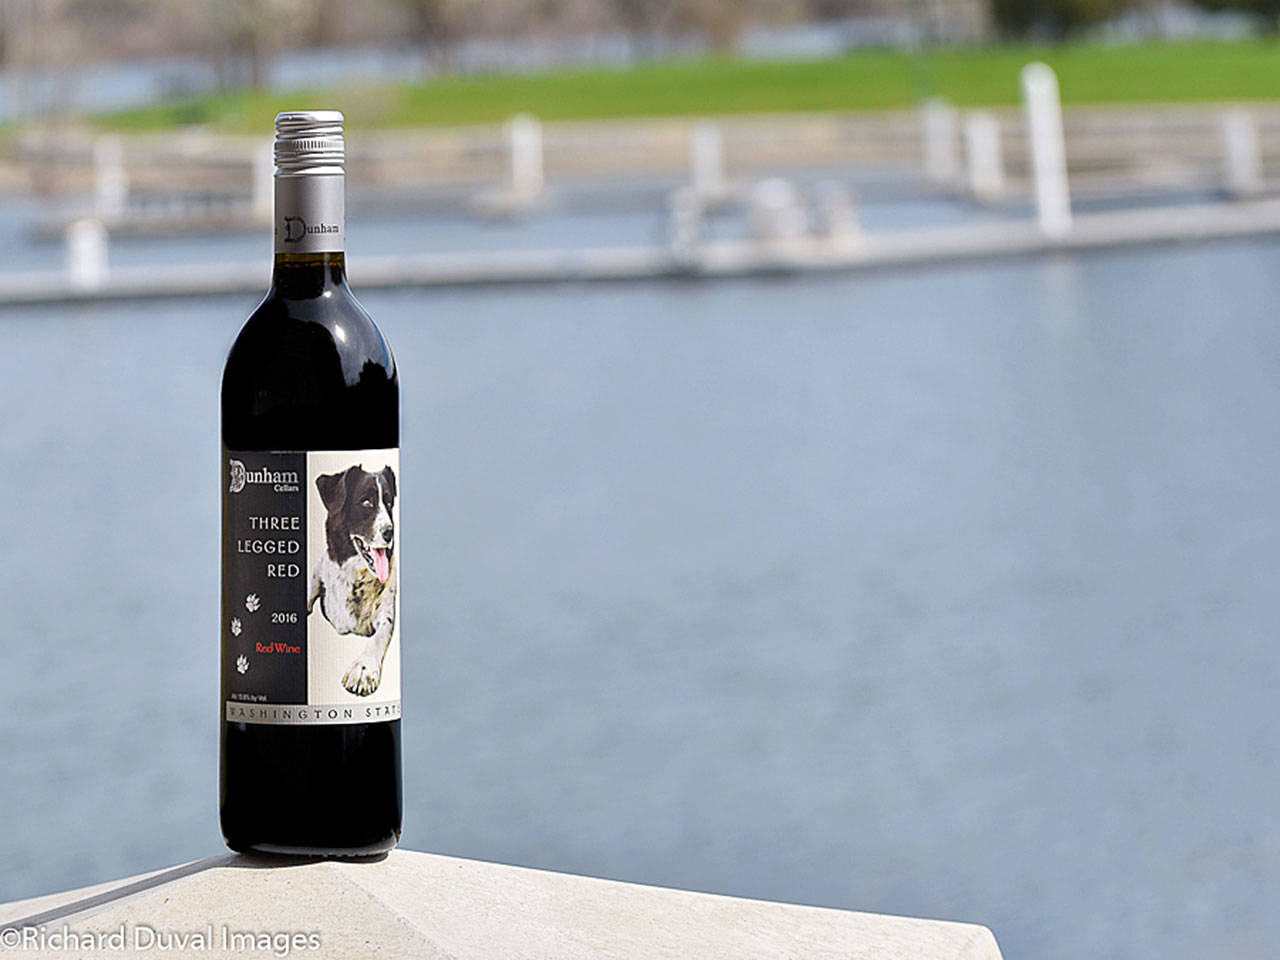 J.D. Nolan, who owns Fat Olives Restaurant in Richland, worked with the Mercer family to create the Schooler Nolan 2016 Cabernet Sauvignon from the Horse Heaven Hills. The $15 Cab was voted by judges as best of class at the 2019 Cascadia International Wine Competition. (Richard Duval Images)